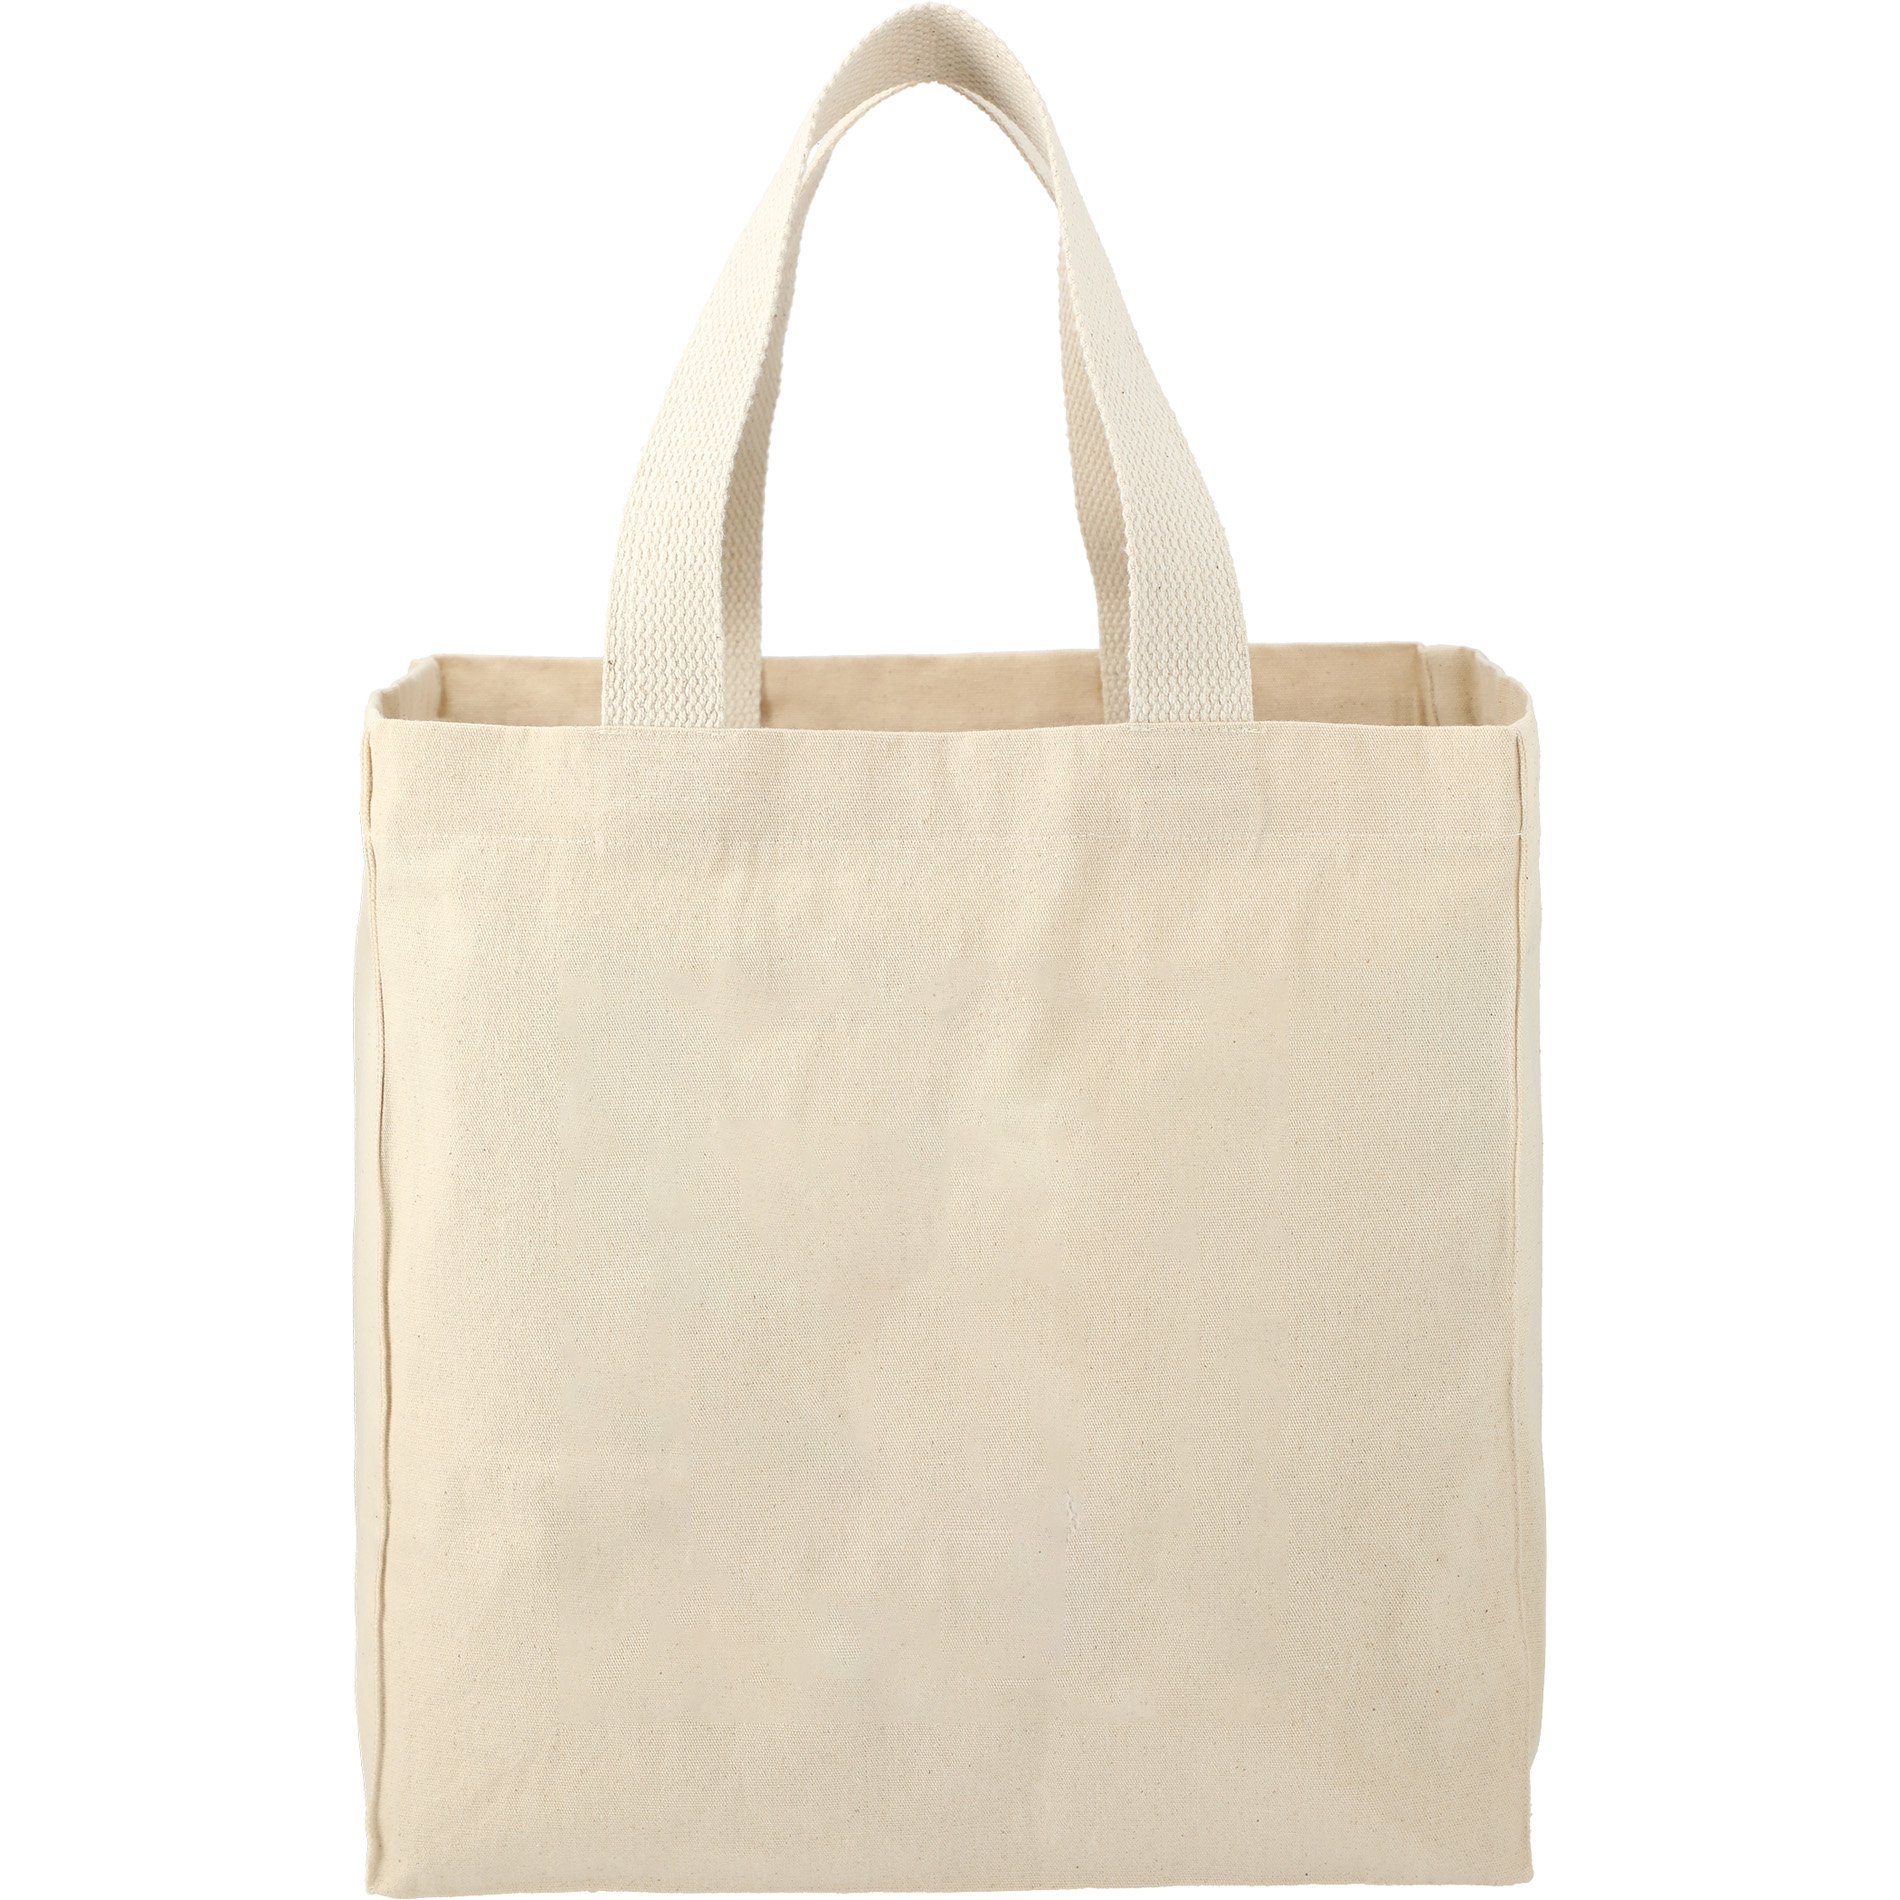 LEEDS 7900-00 - Essential 8oz Cotton Grocery Tote